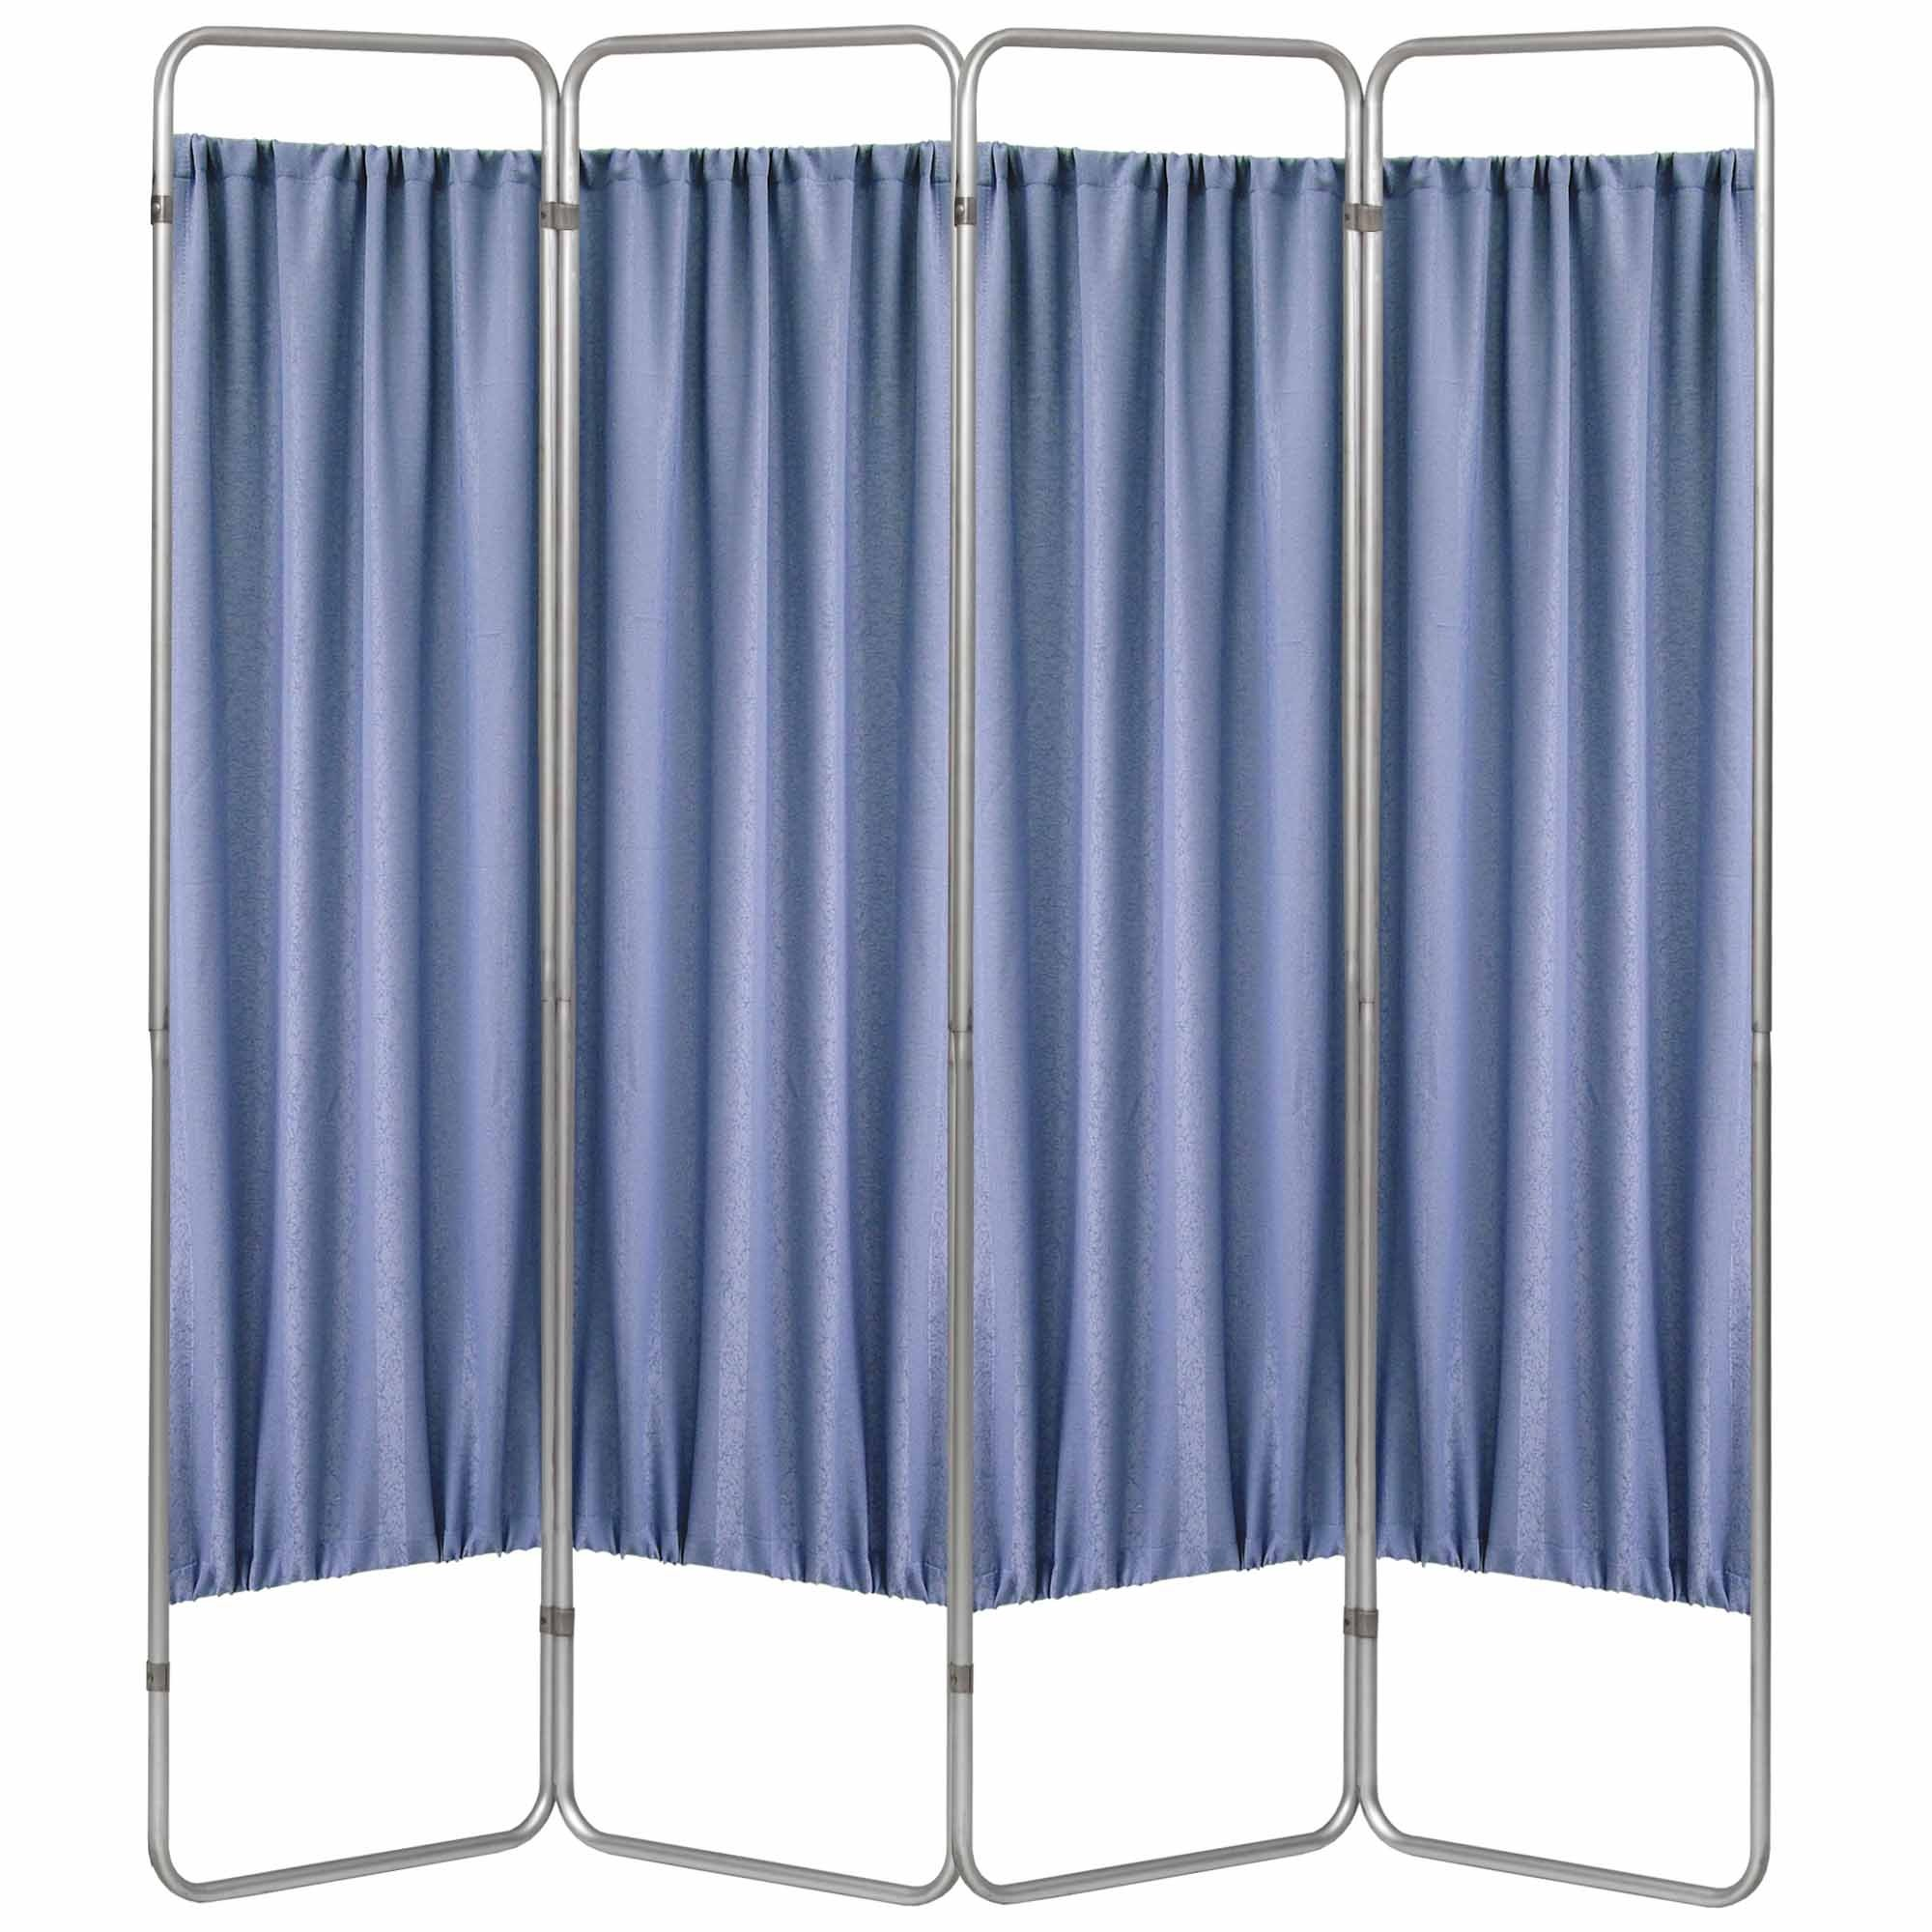 Economy 4 Section Folding Privacy Screen - Norway Designer Cloth Screen Panel